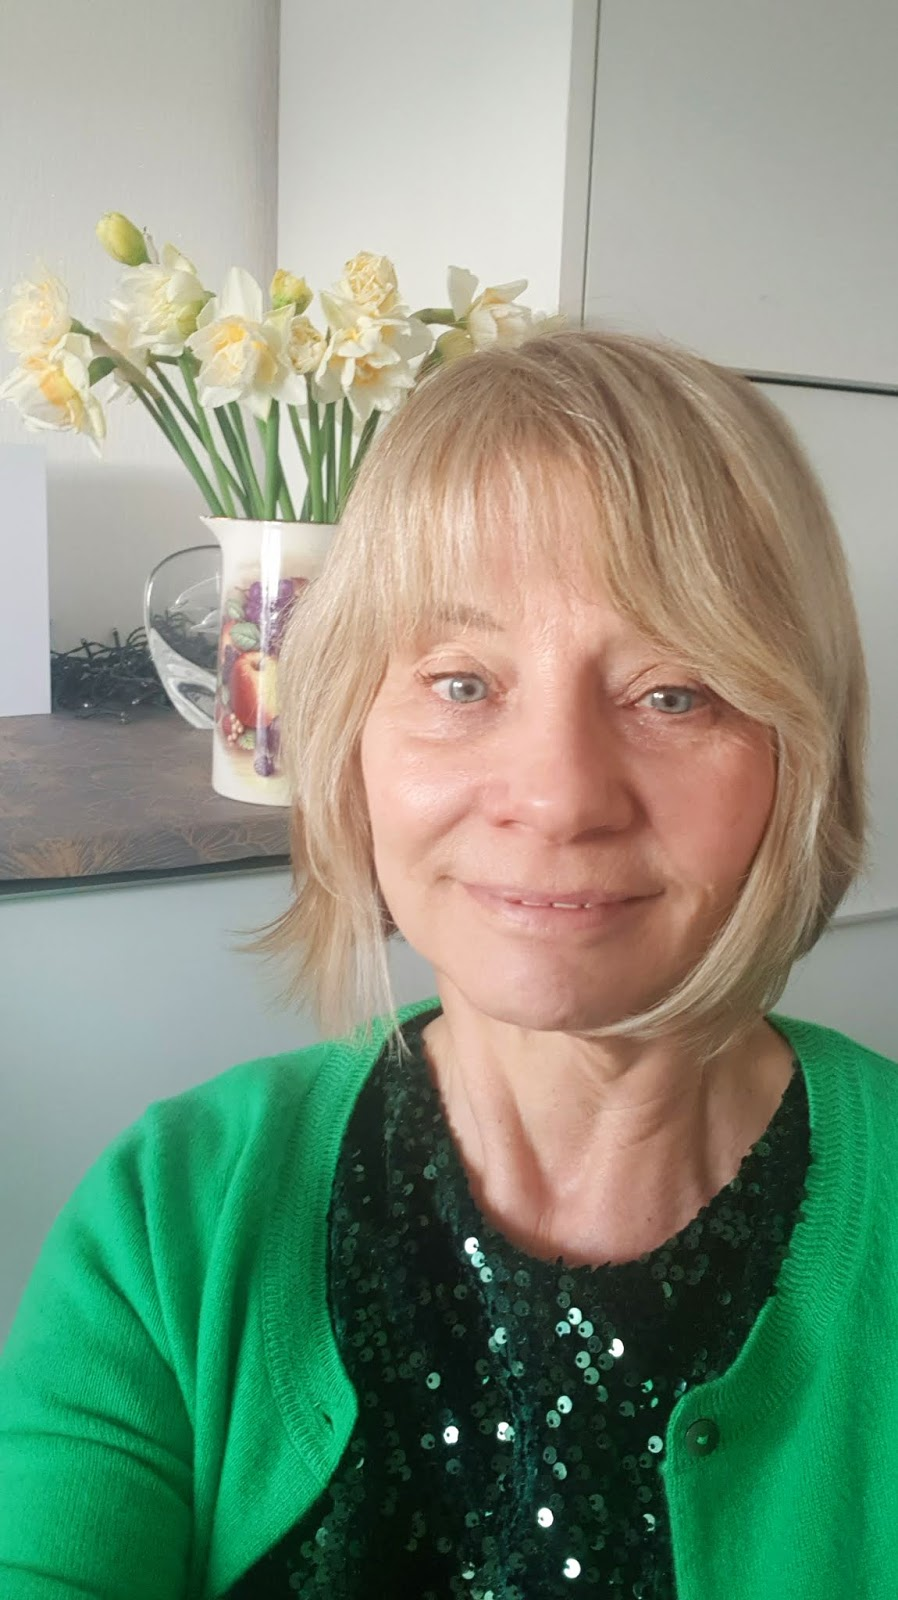 Over 50s style blogger Gail Hanlon shares her latest skincare and hair products along with the Look Fantastic Golden Easter egg 2020